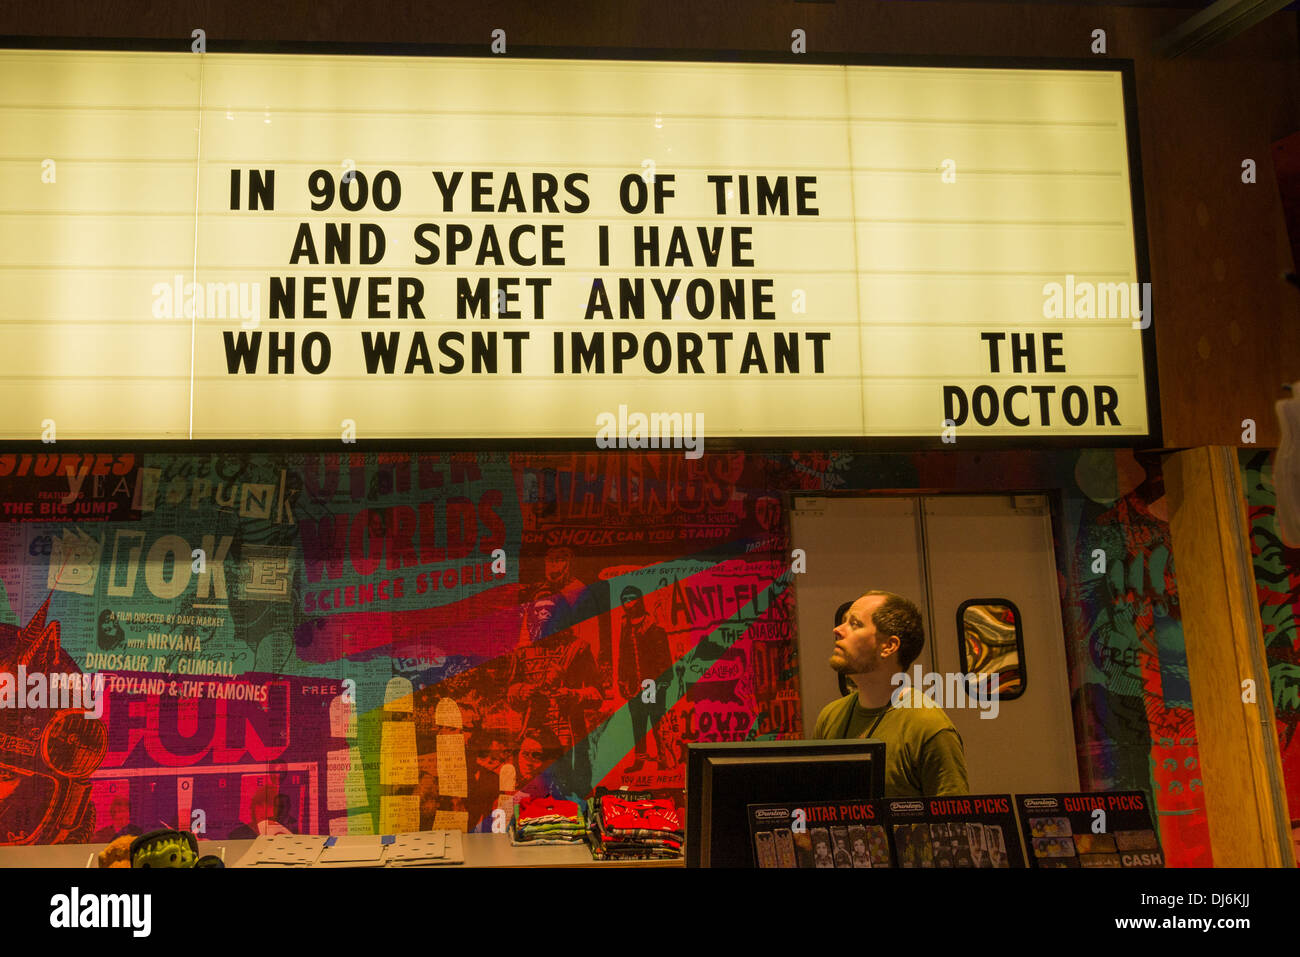 Dr Who quote, EMP Museum, Seattle Center, Seattle, Washington State, USA - Stock Image